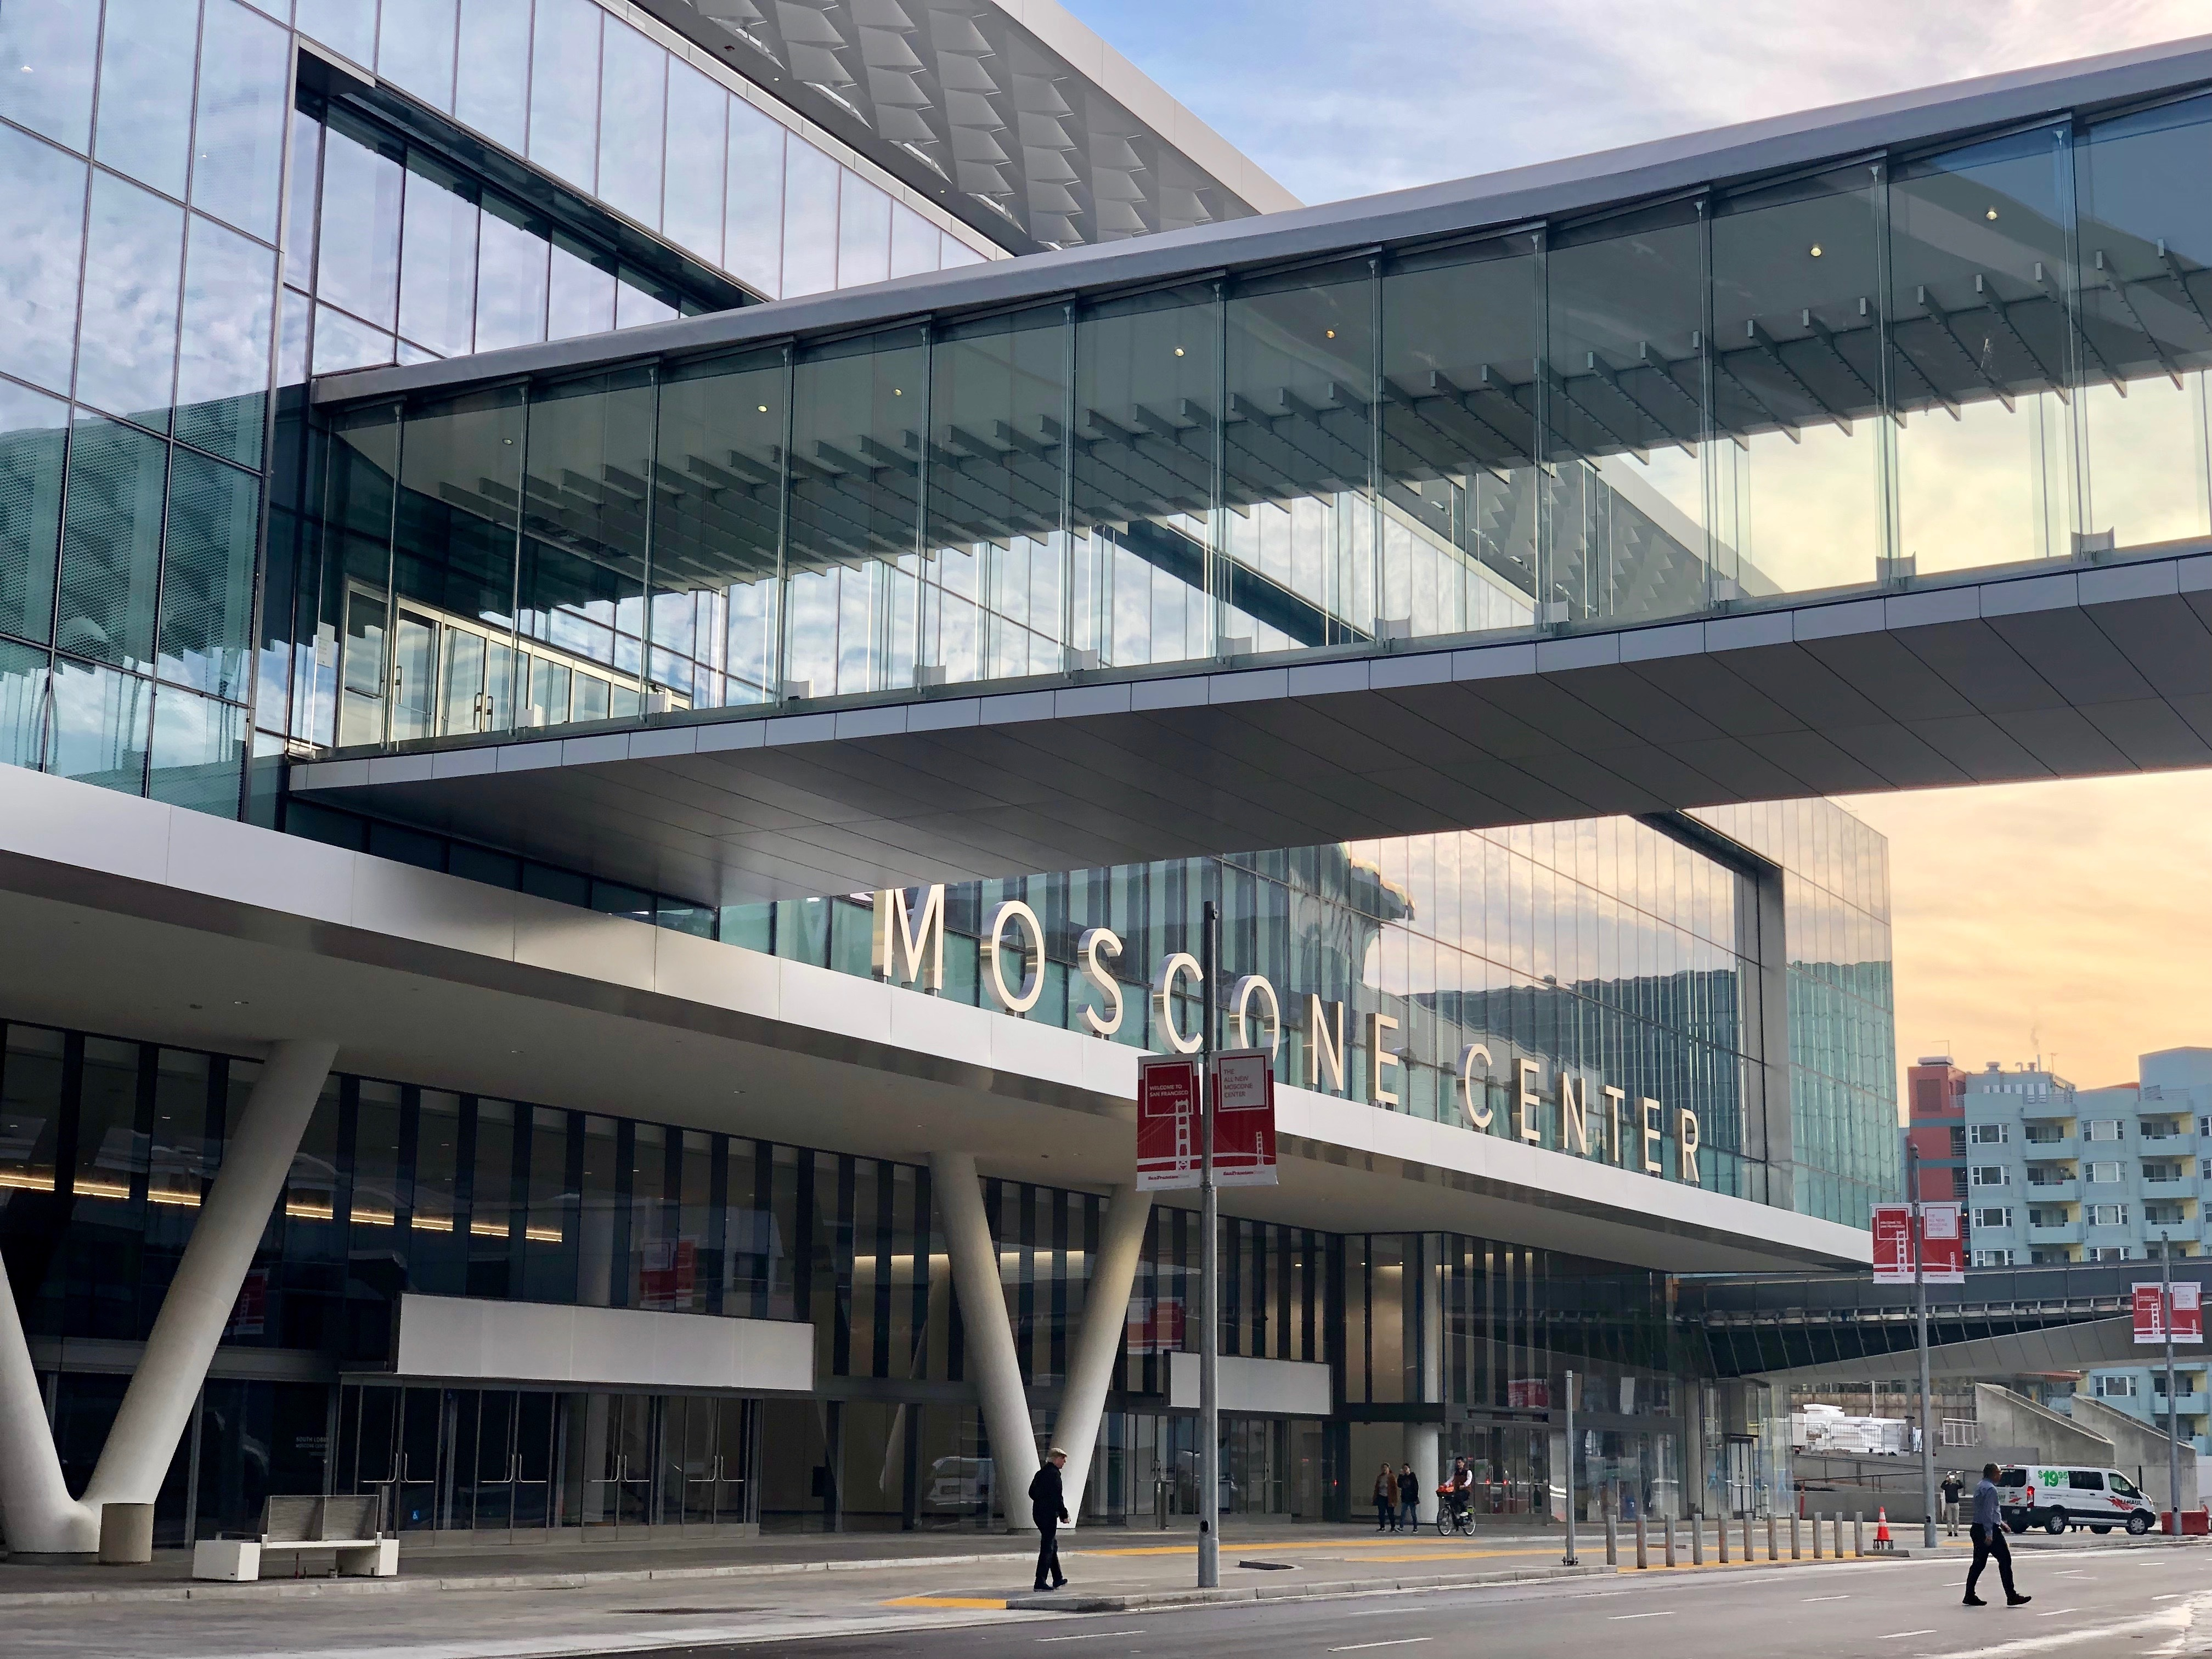 """A glass-enclosed pedestrian bridge leading into the second story of a broad building with lettering out front reading """"Moscone Center."""""""